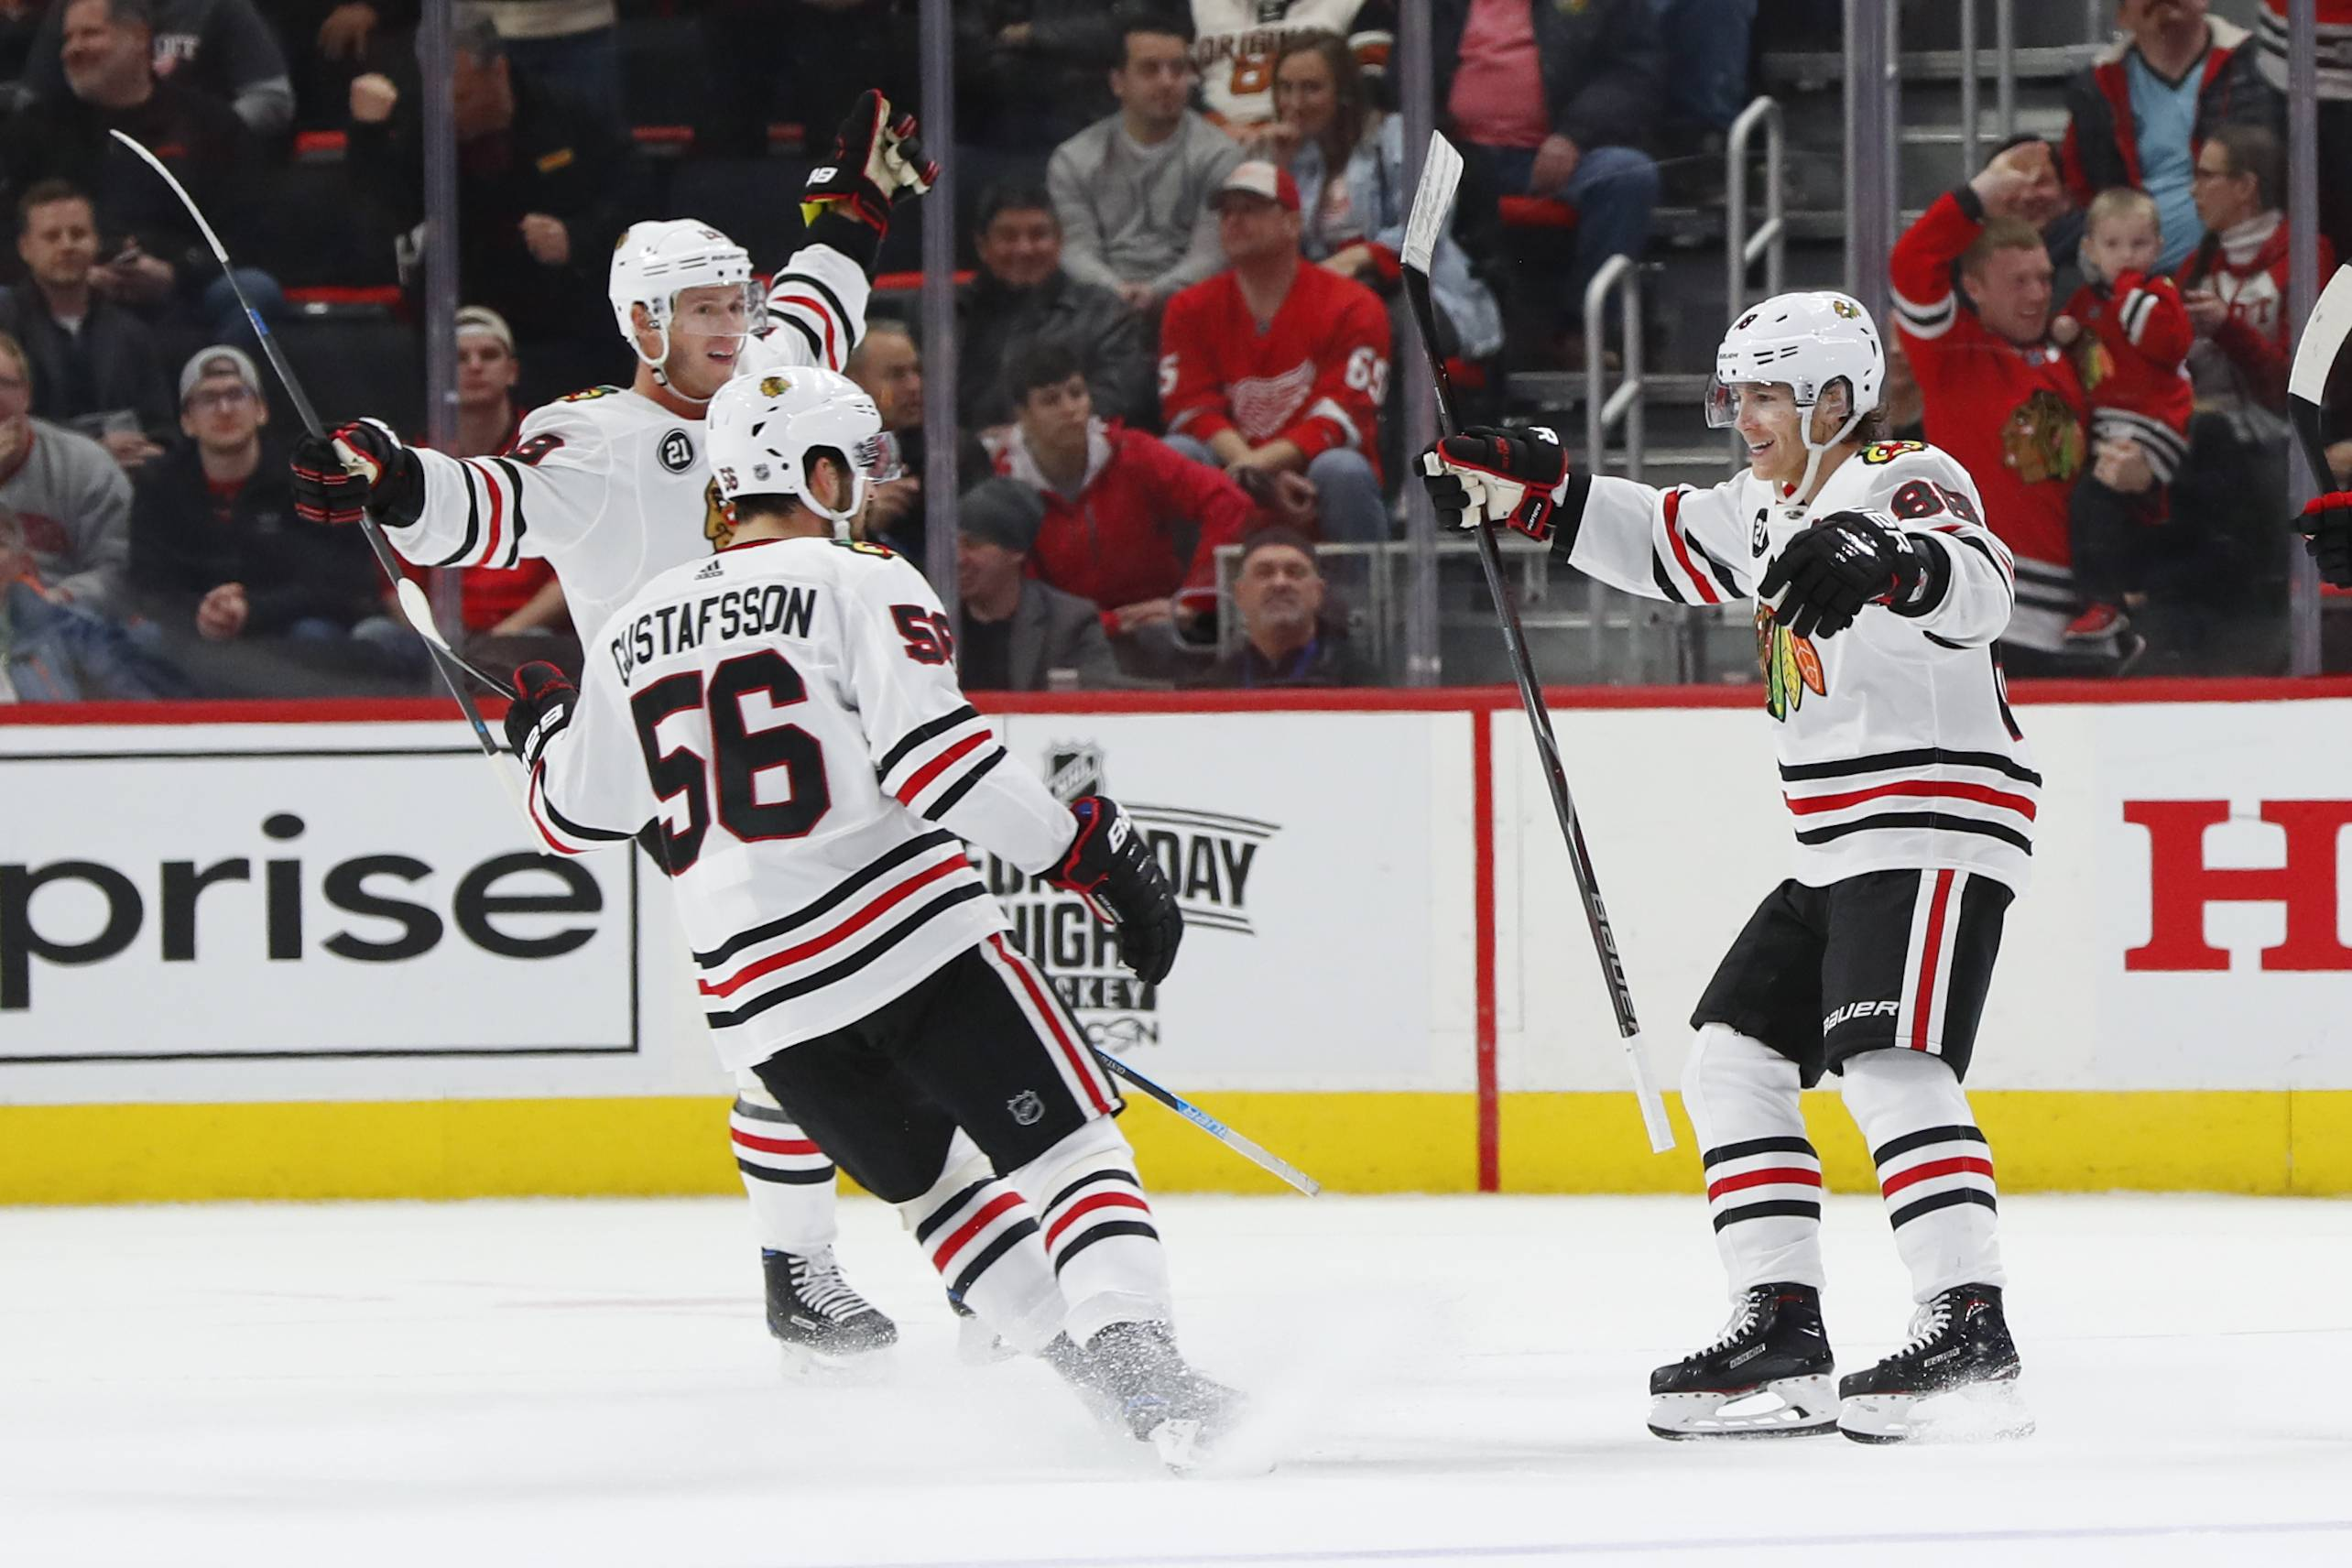 Blackhawks right wing Patrick Kane, right, celebrates his game-winning OT goal on Wednesday night in Detroit.